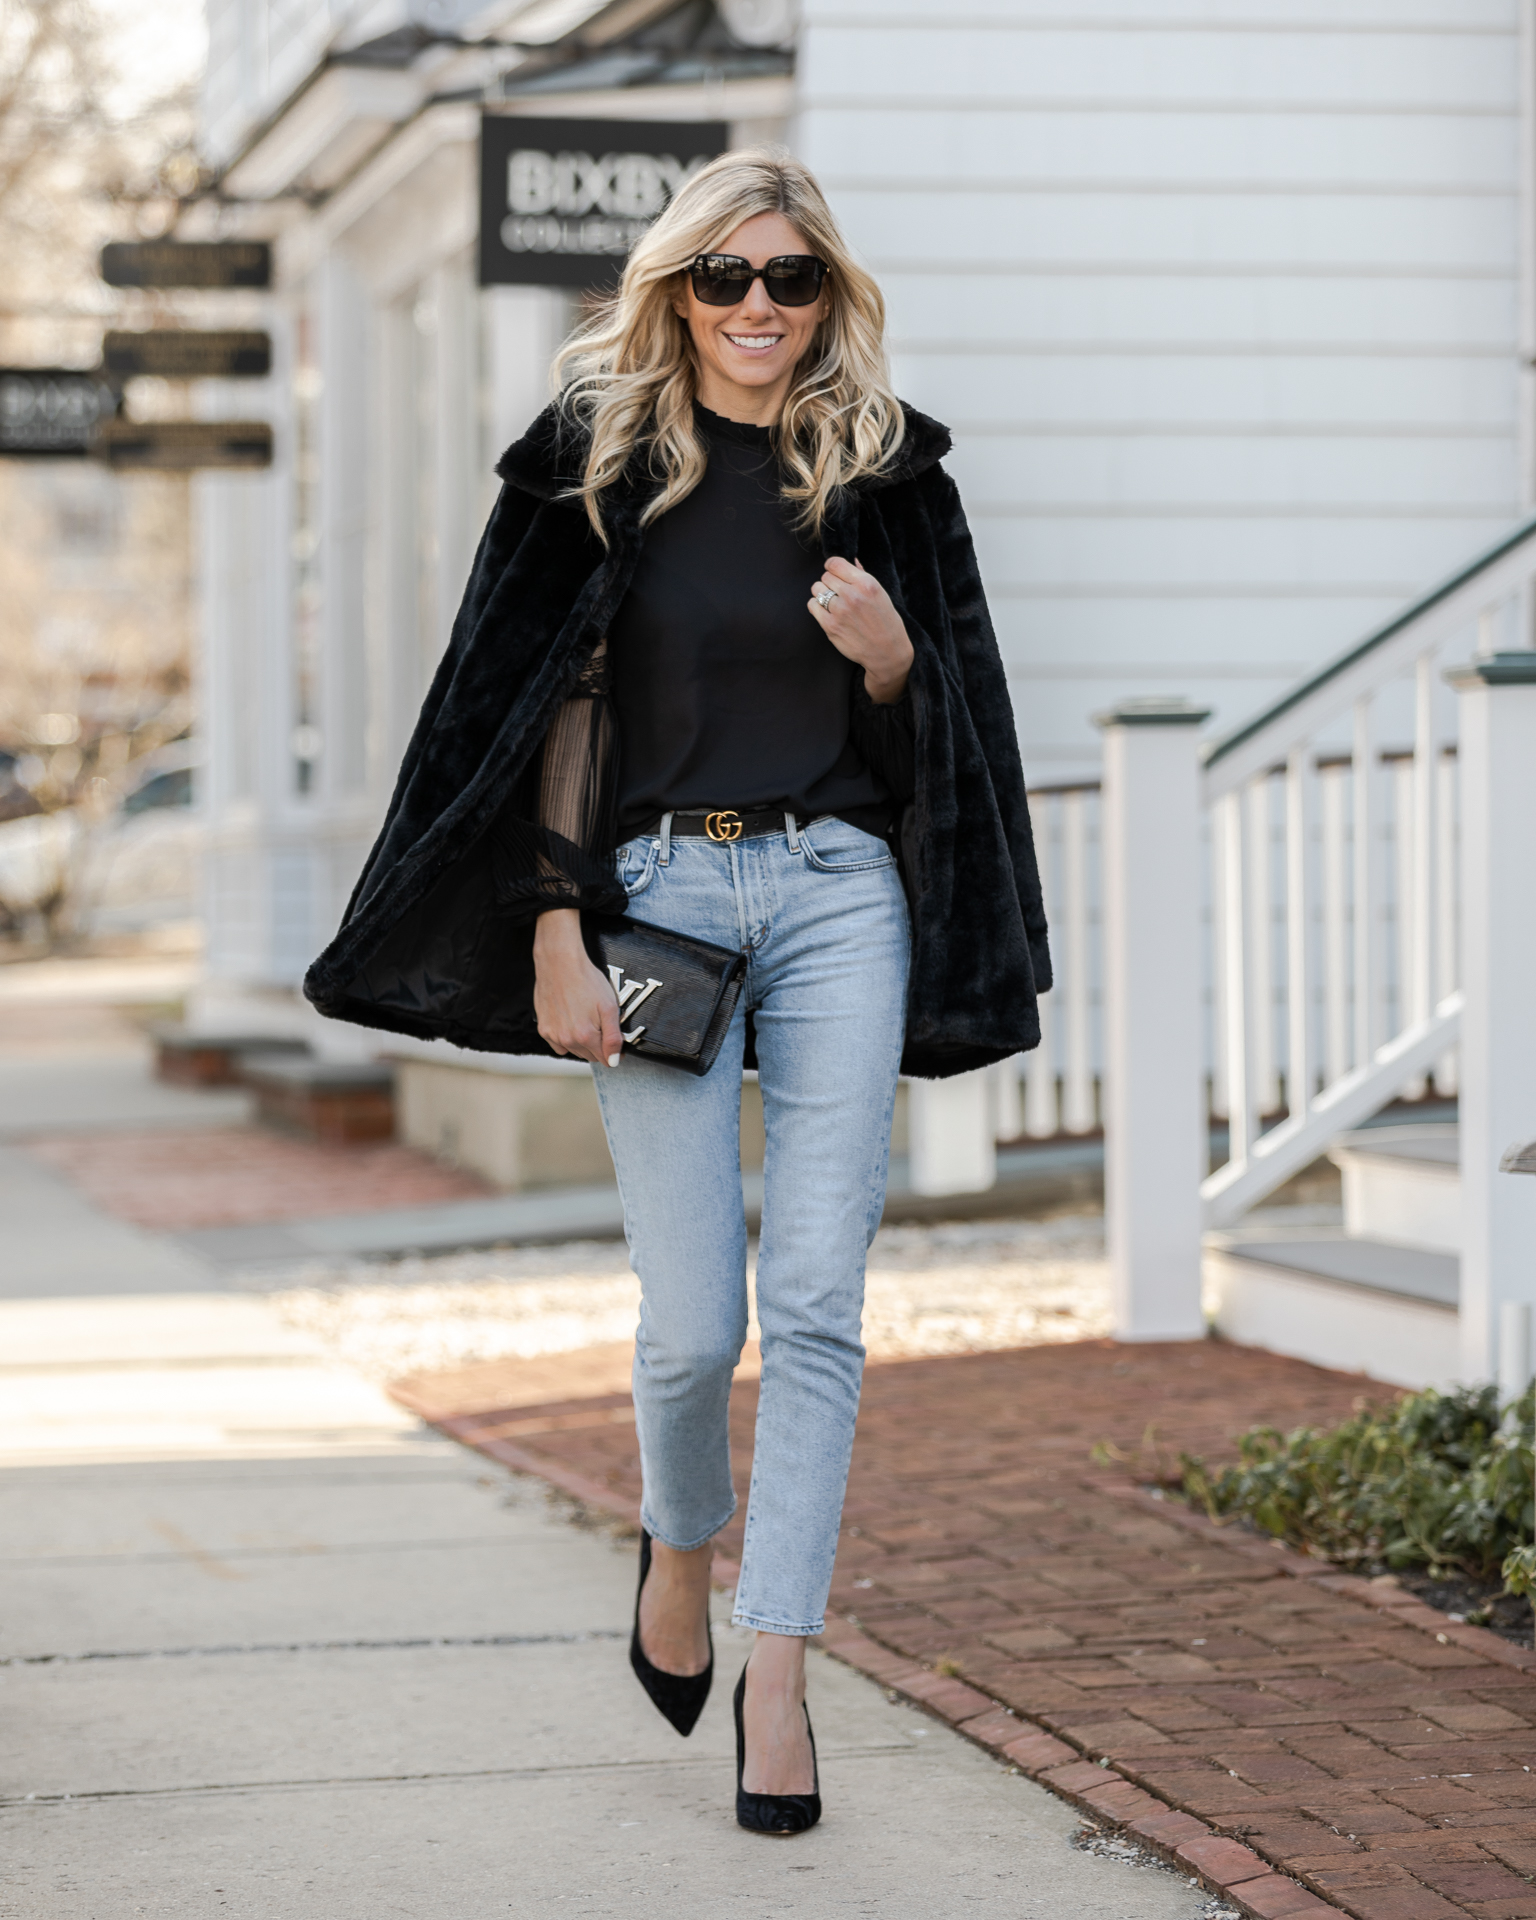 chic-black-blouse-with-lace-sleeves-the-glamorous-gal